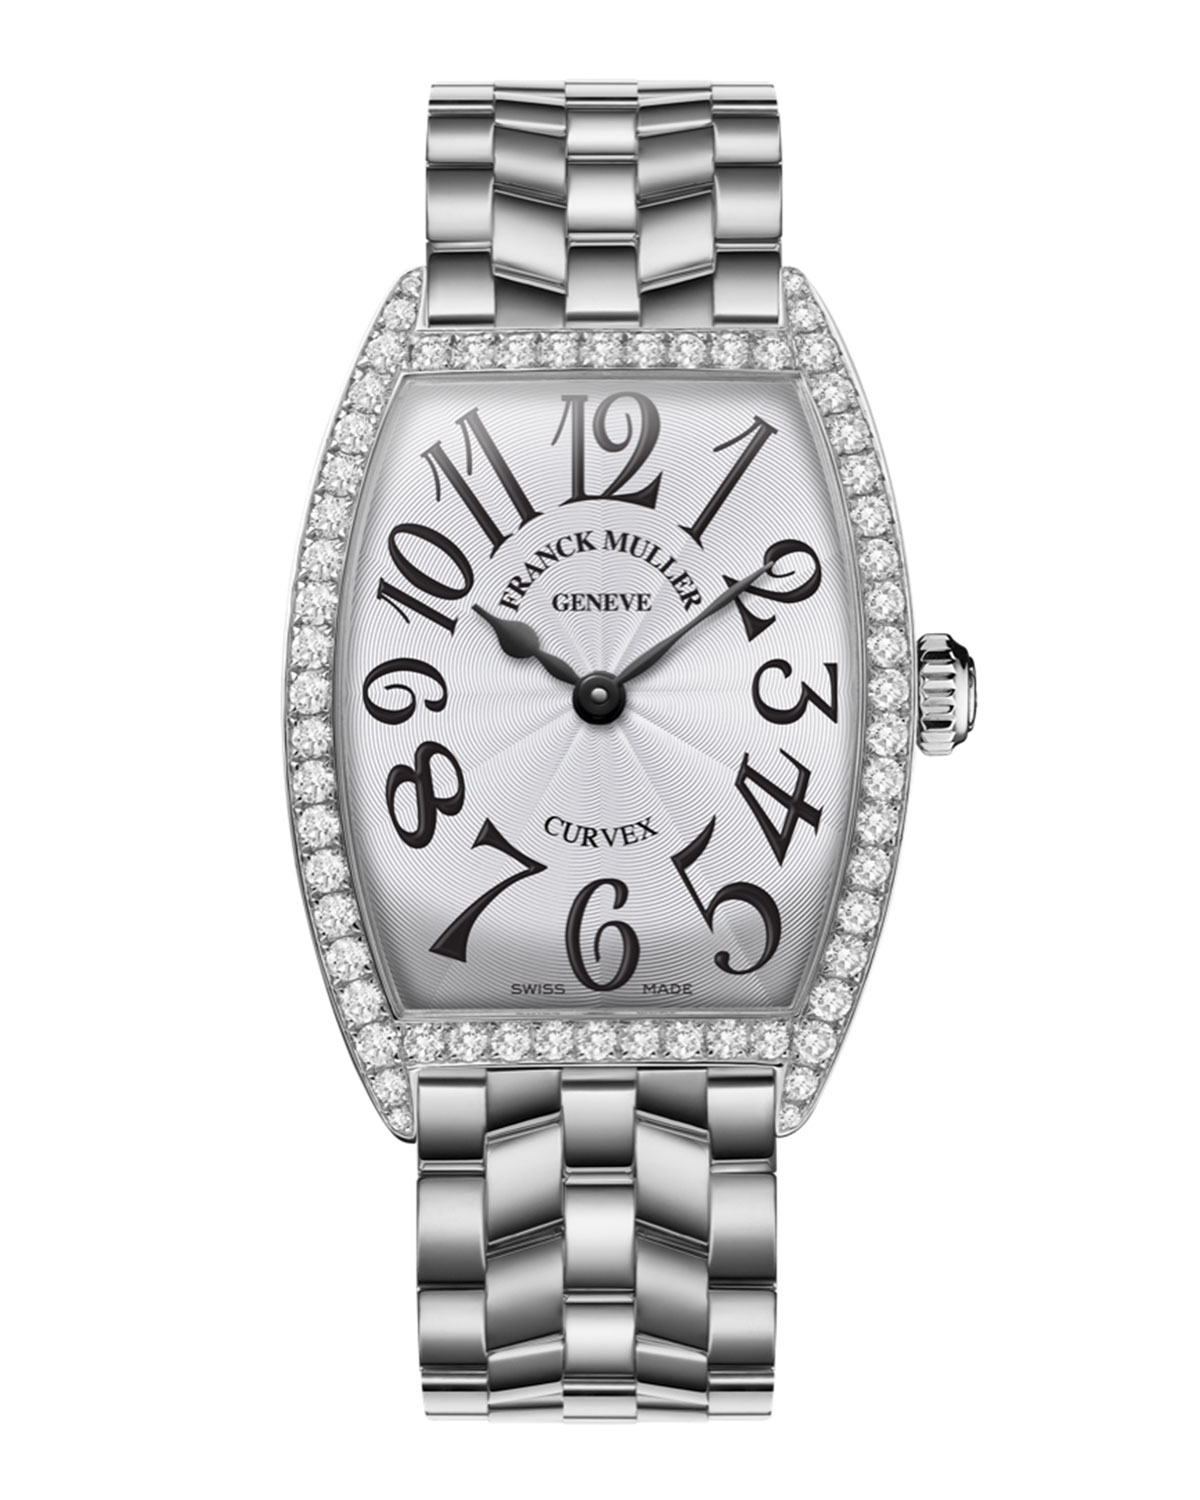 78ce97ebeab Franck Muller Ladies Curvex Stainless Steel Diamond Watch